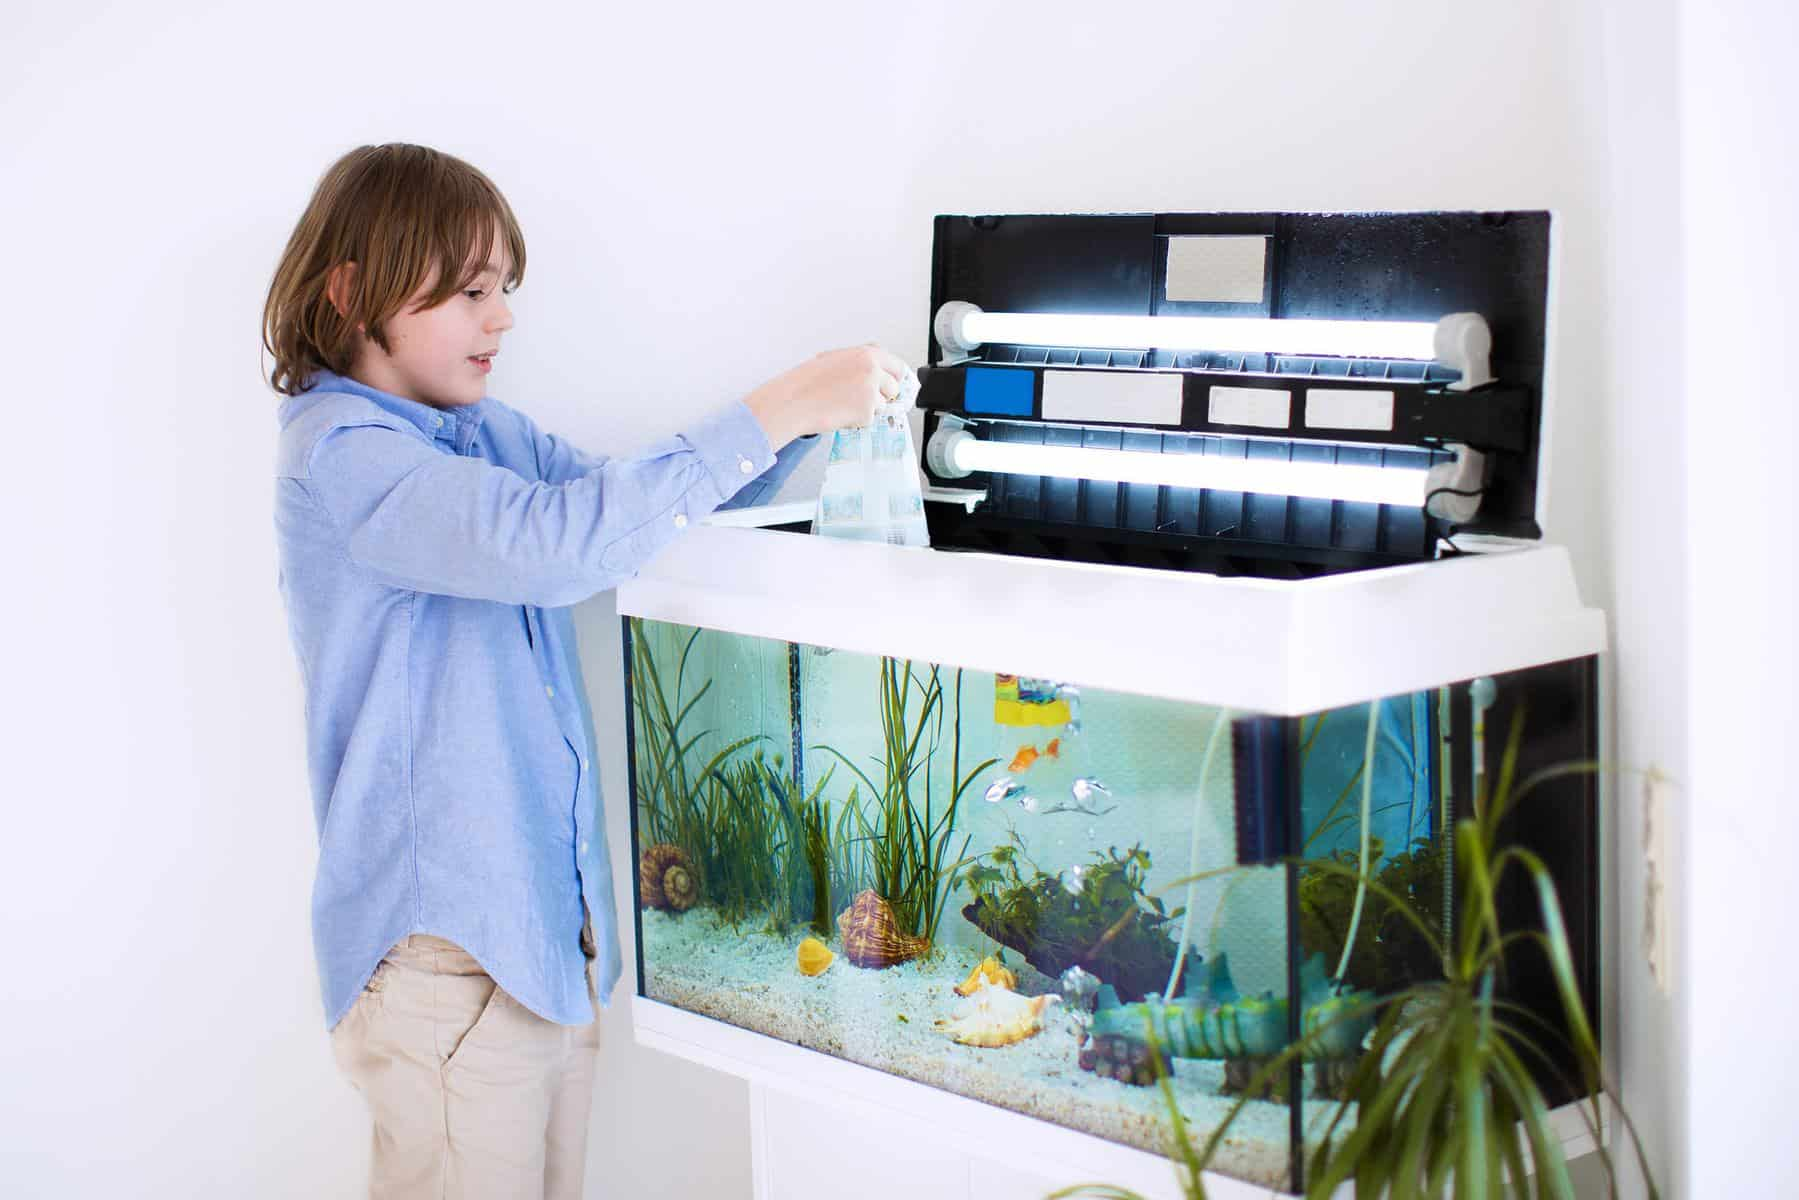 child putting distilled water in aquarium